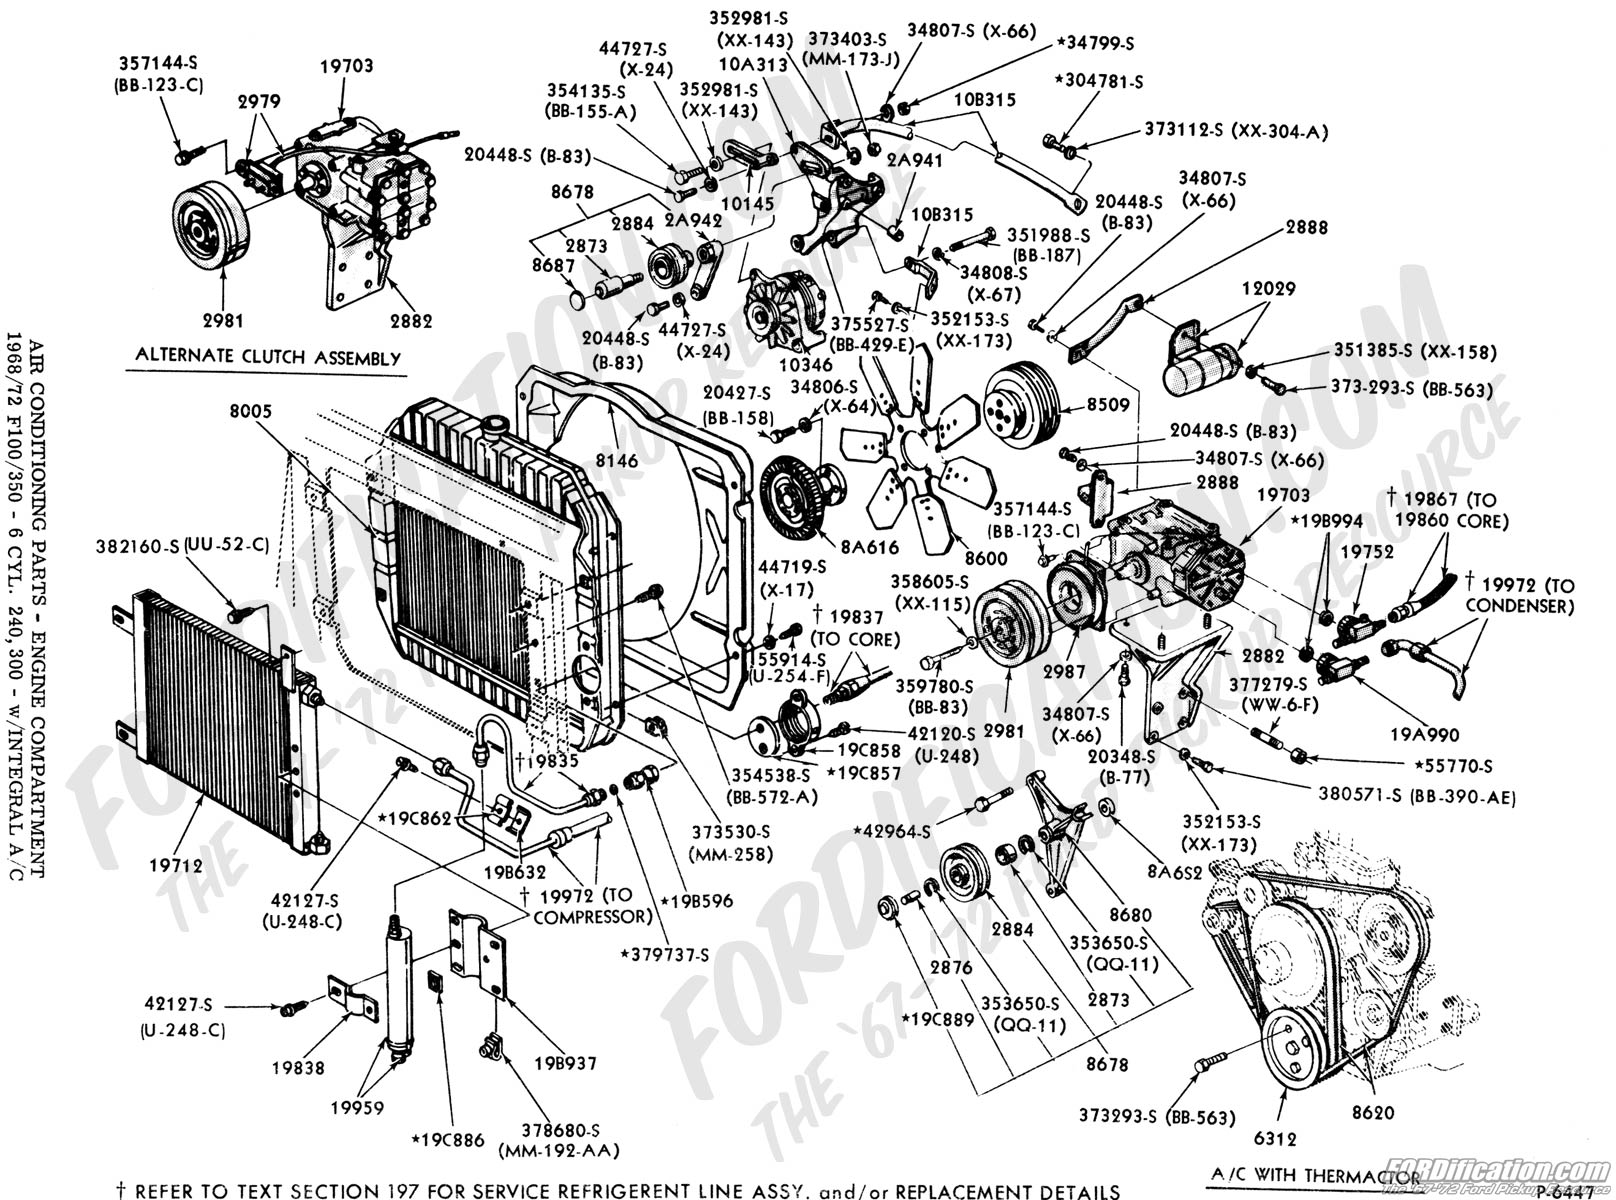 1986 ford f150 engine diagram 2007 headlight wiring 85 f 150 get free image about